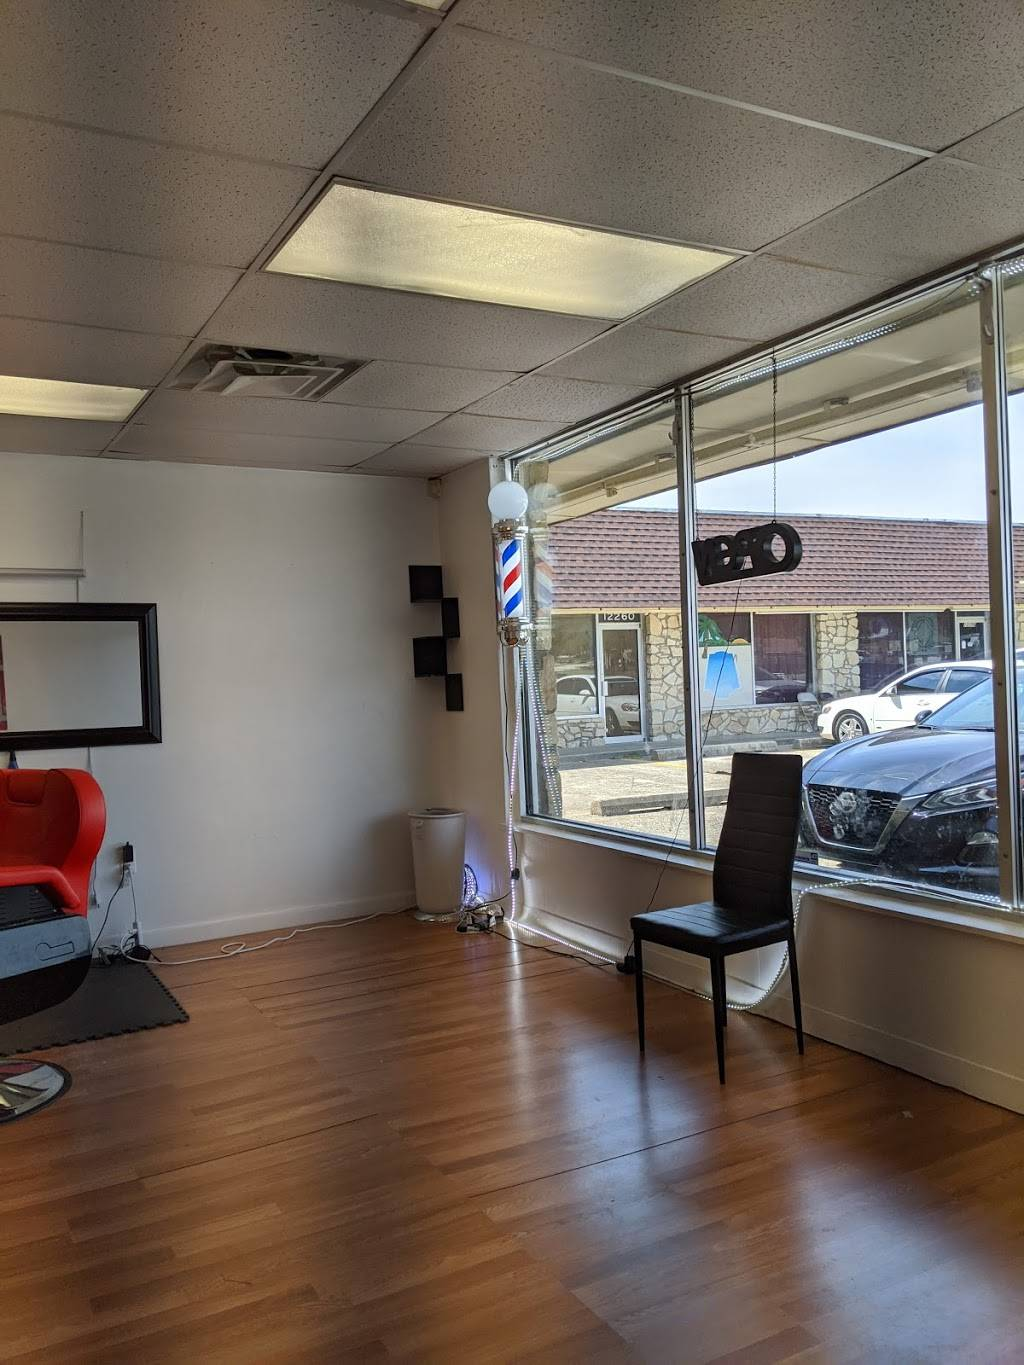 The After Hour Barbershop - hair care  | Photo 3 of 9 | Address: 12272 NE 23rd St, Choctaw, OK 73020, USA | Phone: (405) 339-1440